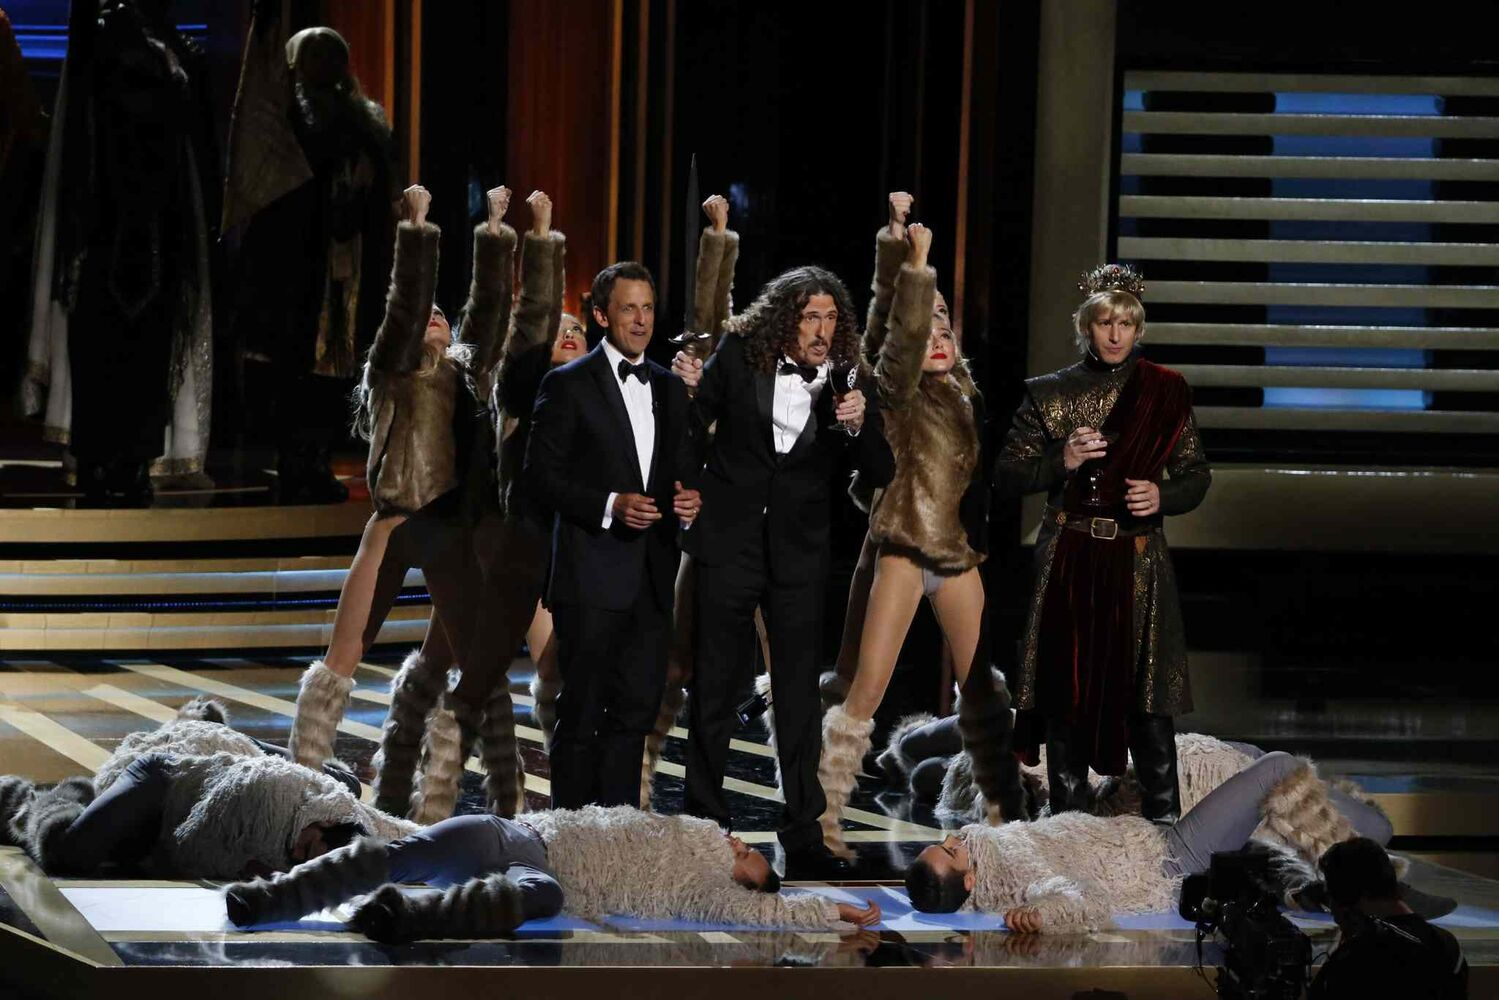 Weird Al Yankovic performs with Emmy host Seth Meyers during the 66th Annual Primetime Emmy Awards.